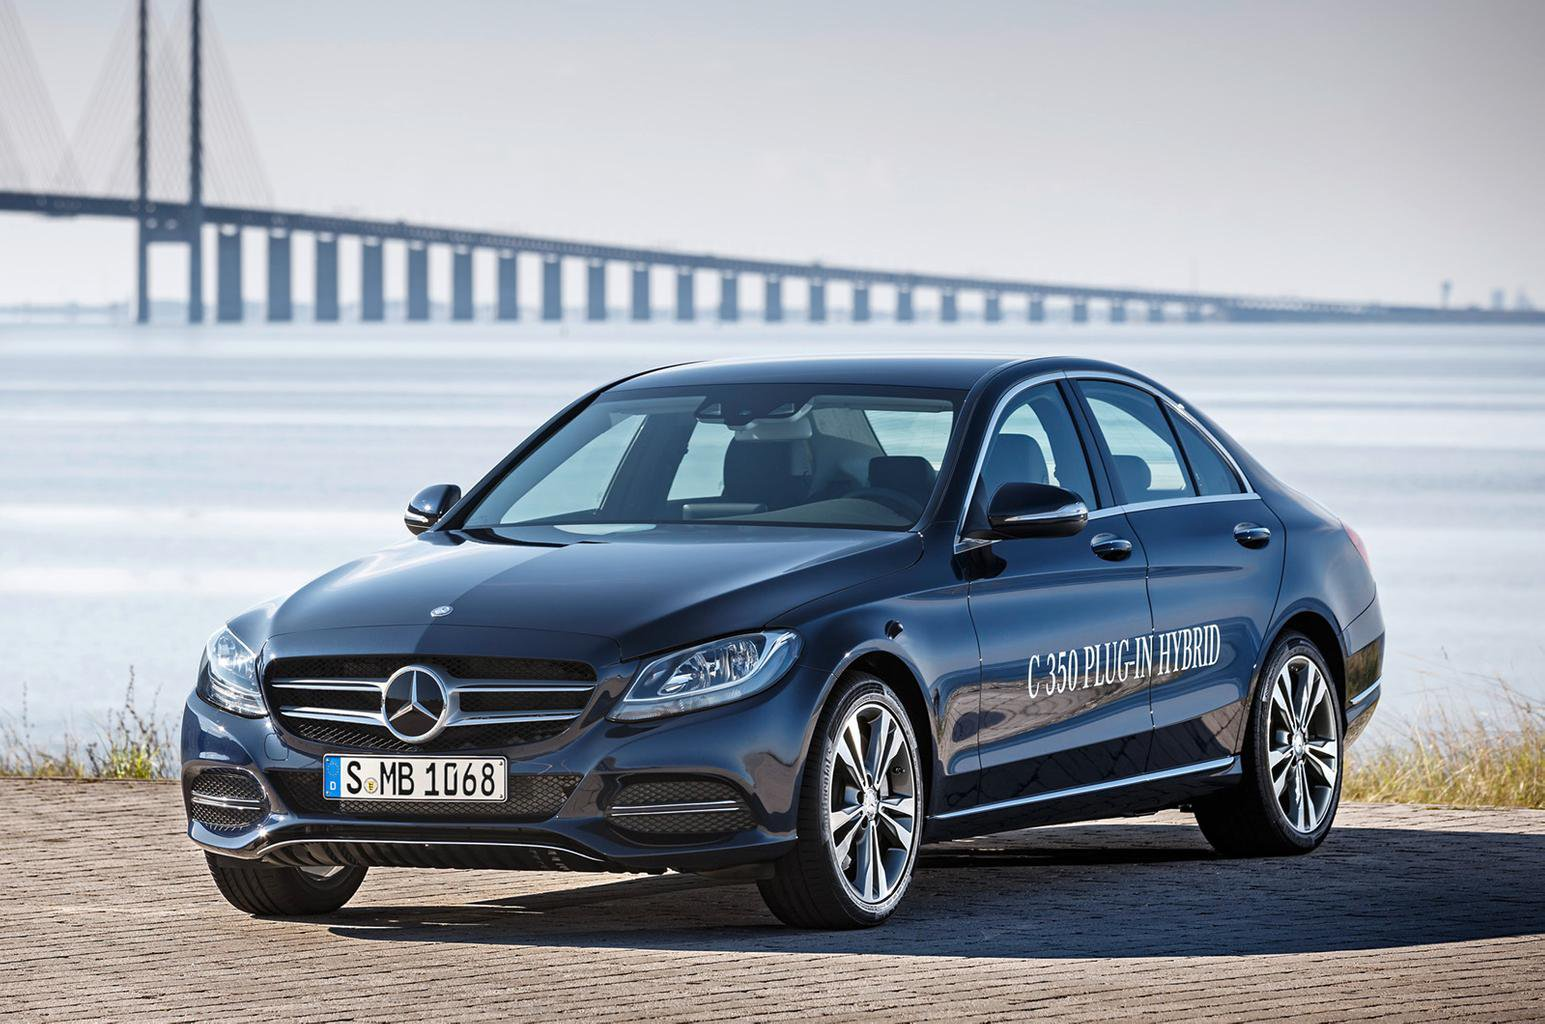 Mercedes-Benz C-Class plug-in hybrid and C450 AMG shown at Detroit